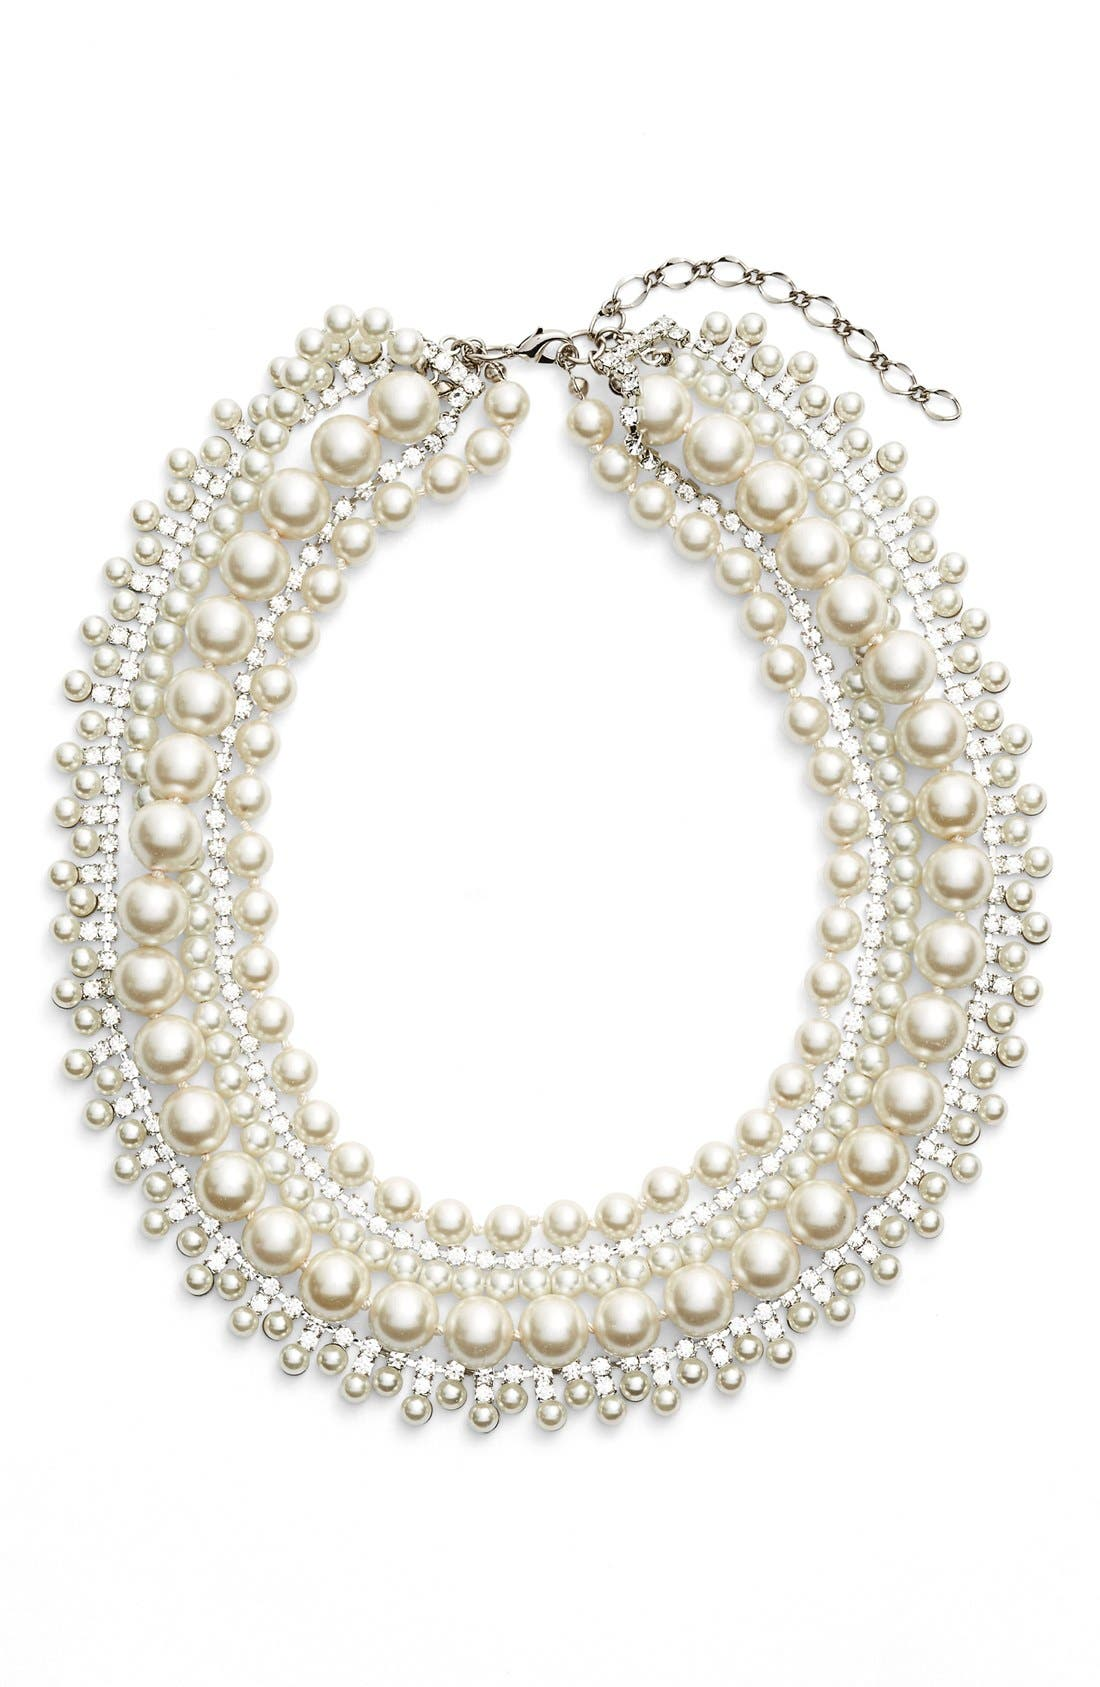 Crystal & Imitation Pearl Multristrand Necklace,                             Main thumbnail 1, color,                             Cream